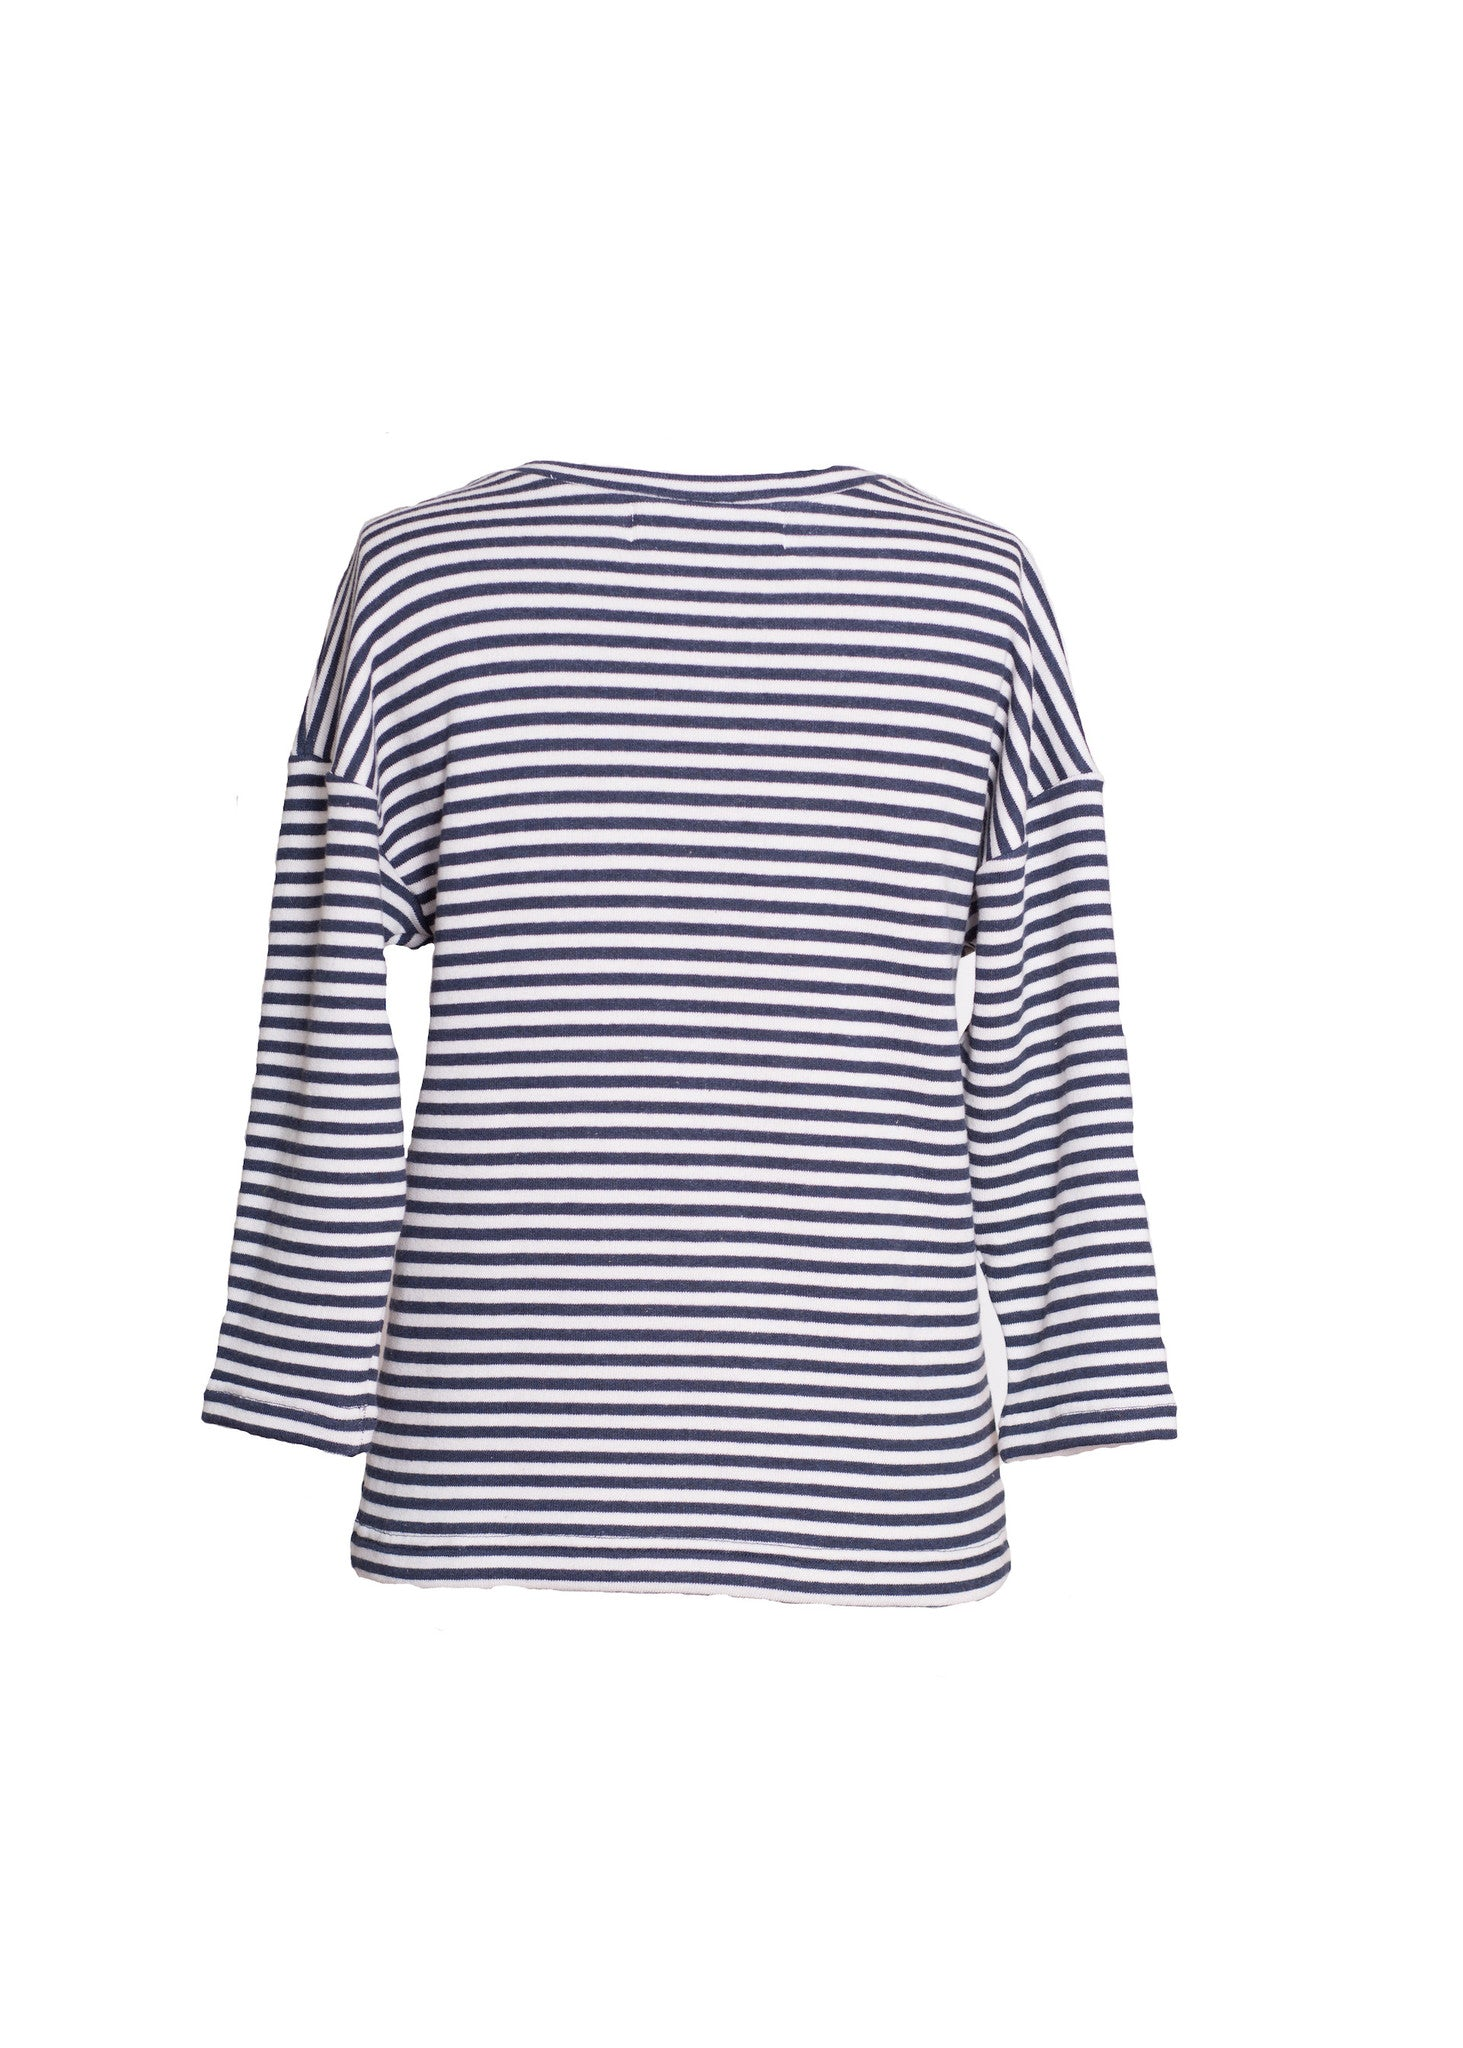 Wanderer Top in stripe